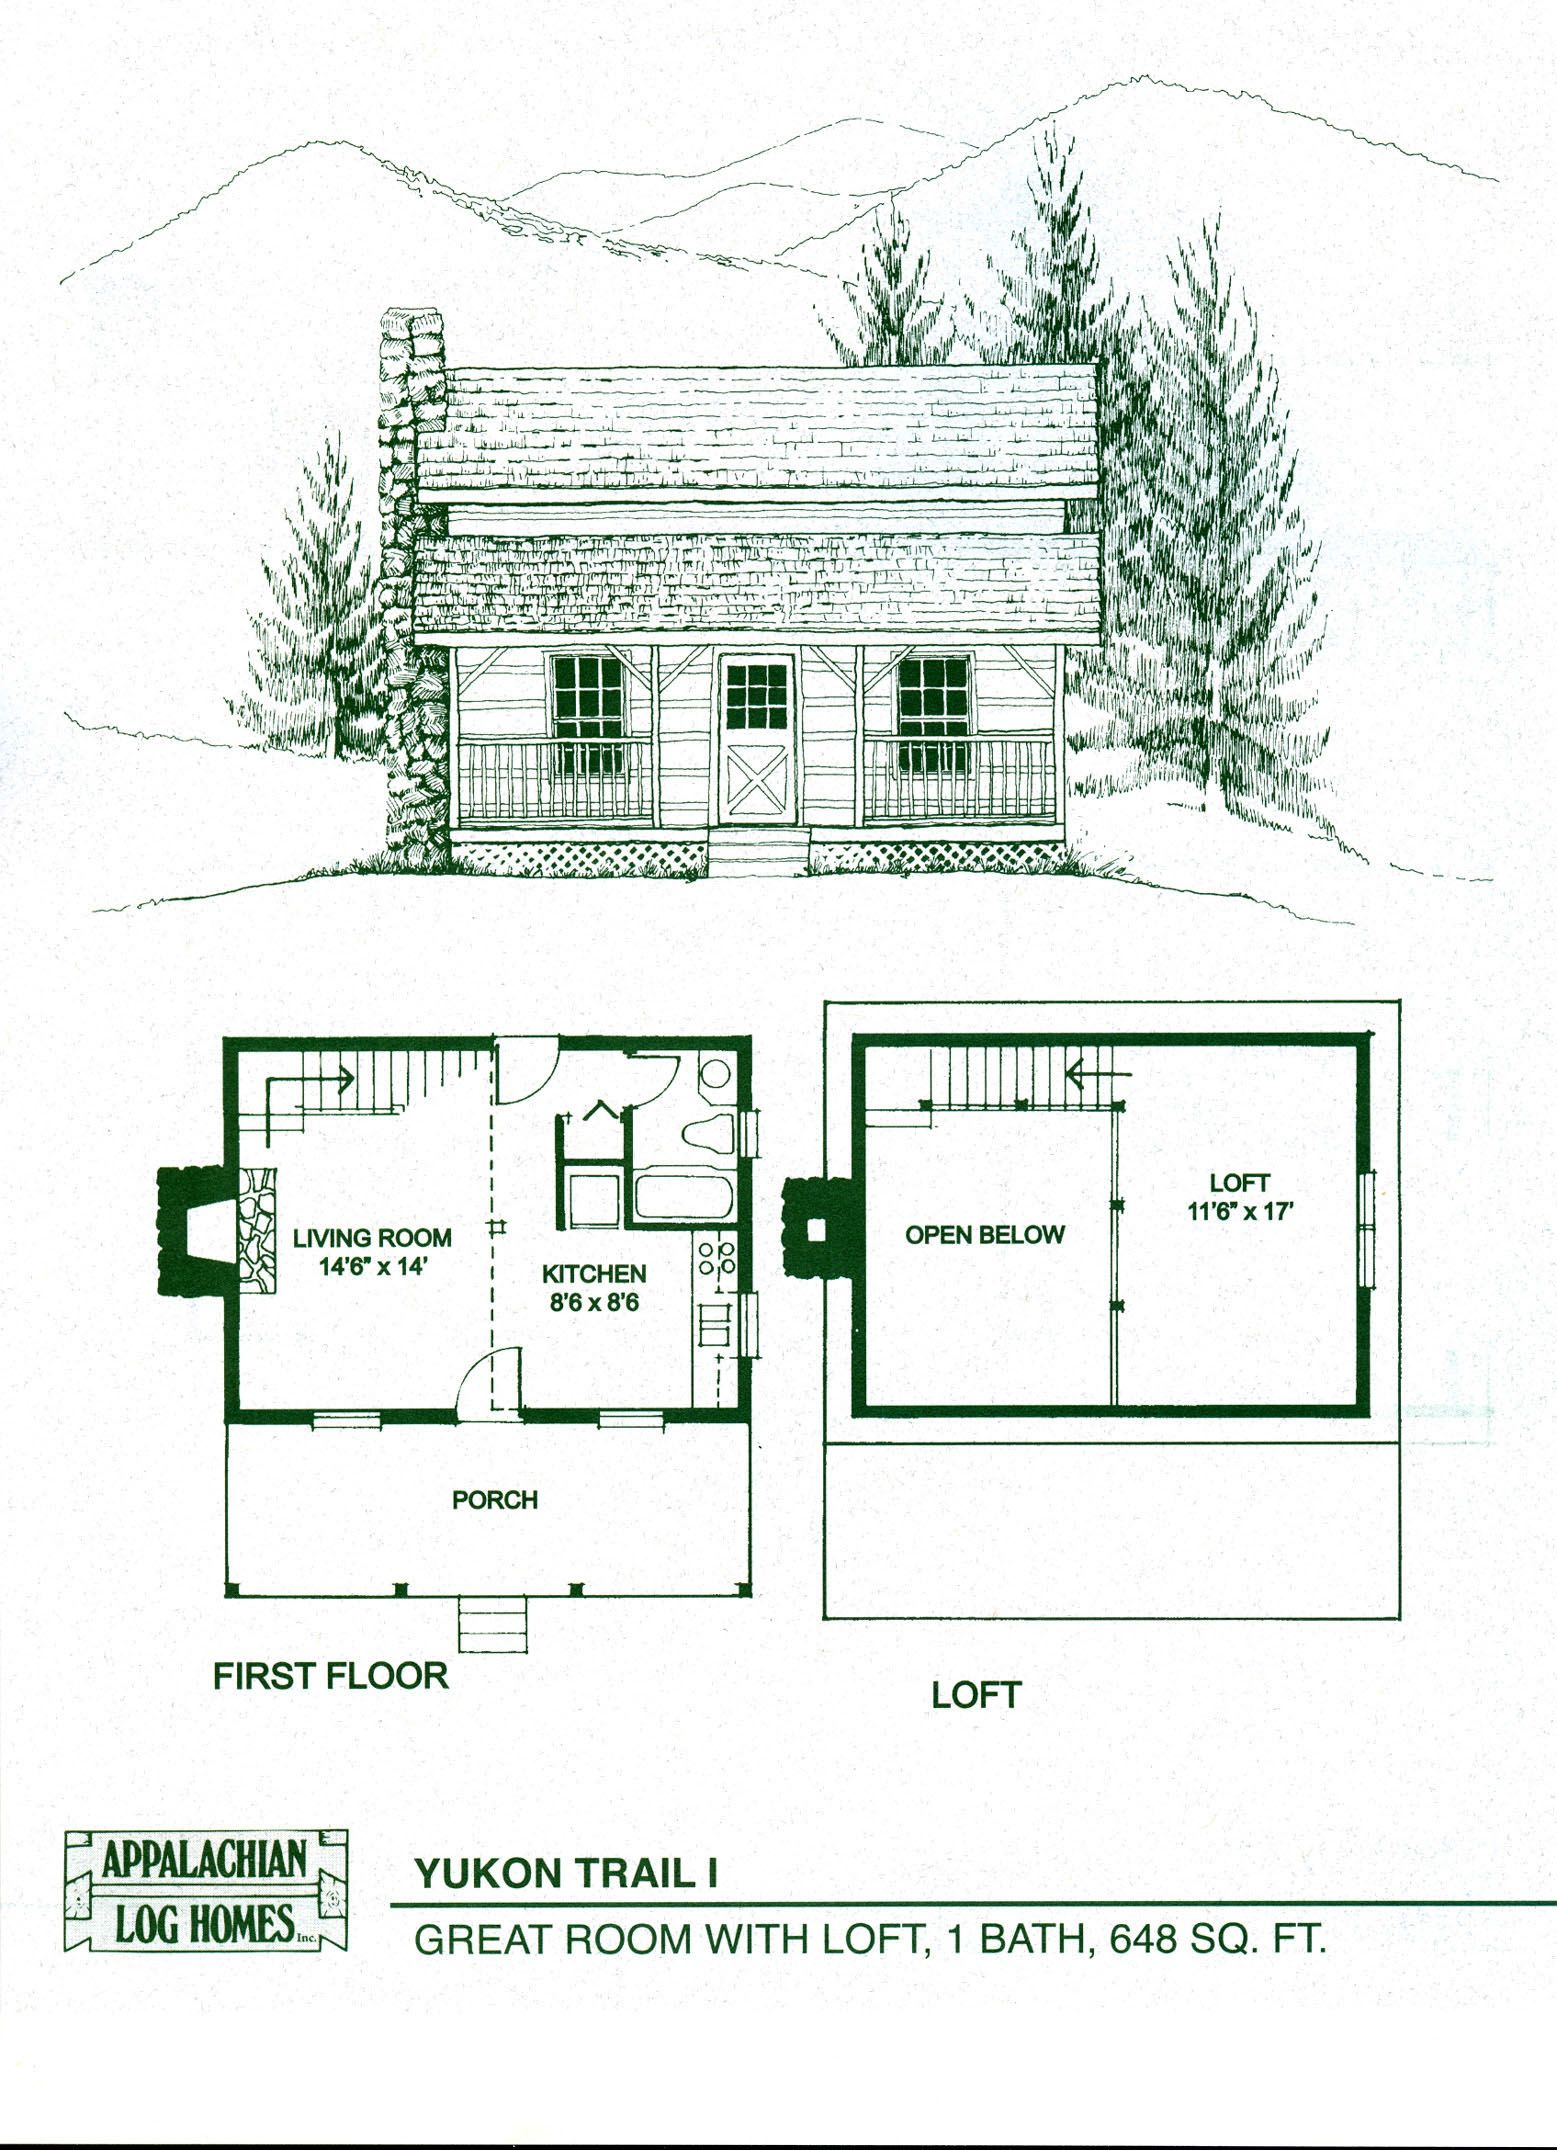 Cabin Floor Plan Ideas Of Log Home Floor Plans Log Cabin Kits Appalachian Log